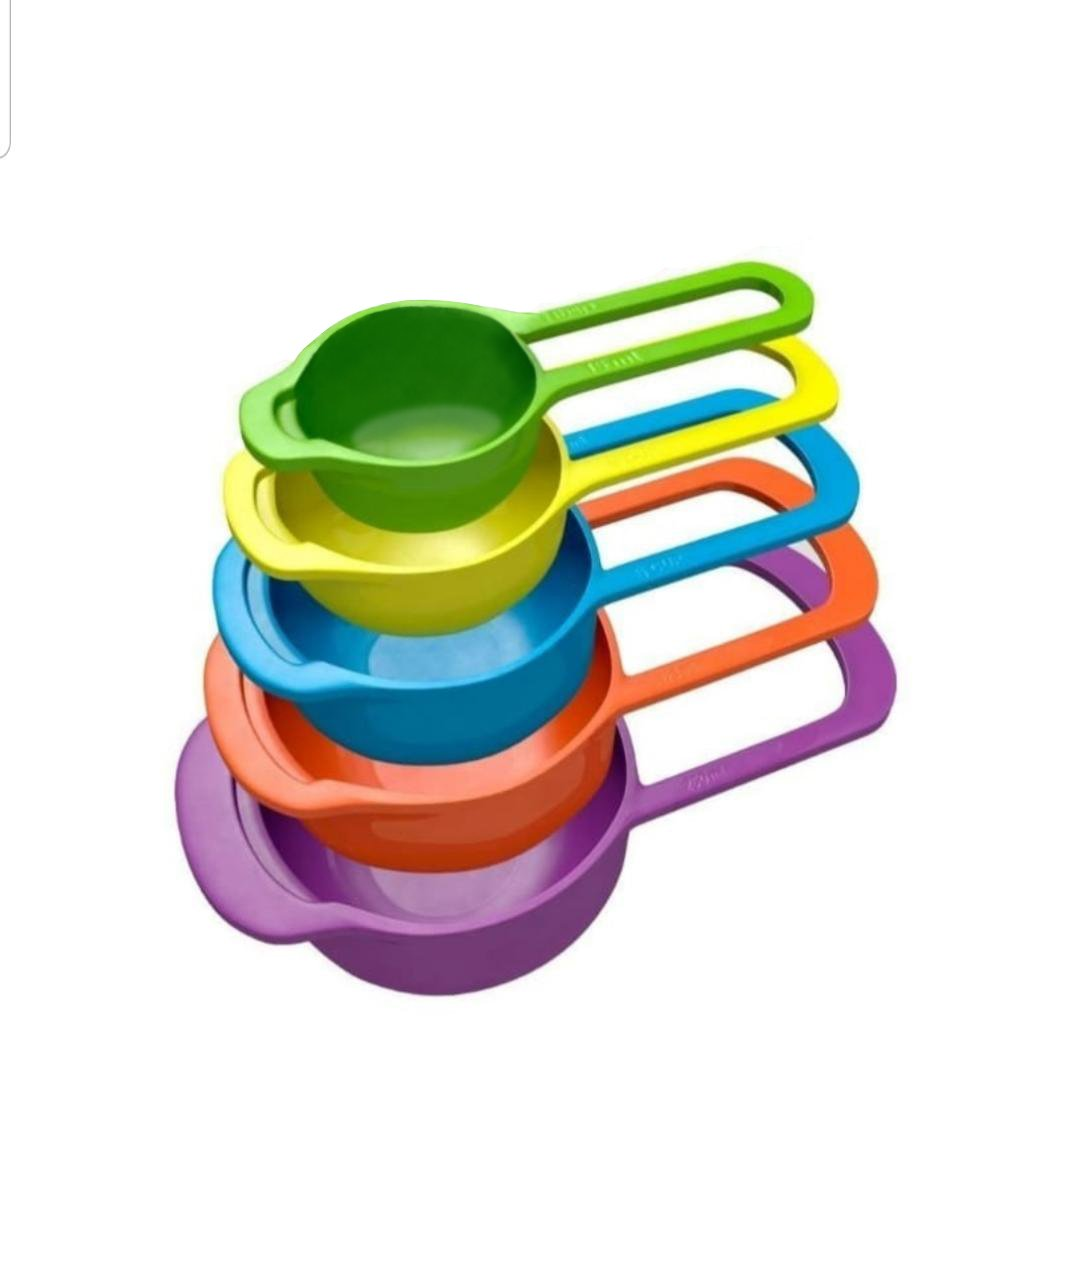 Big Plastic Measuring Spoons - Set of 5